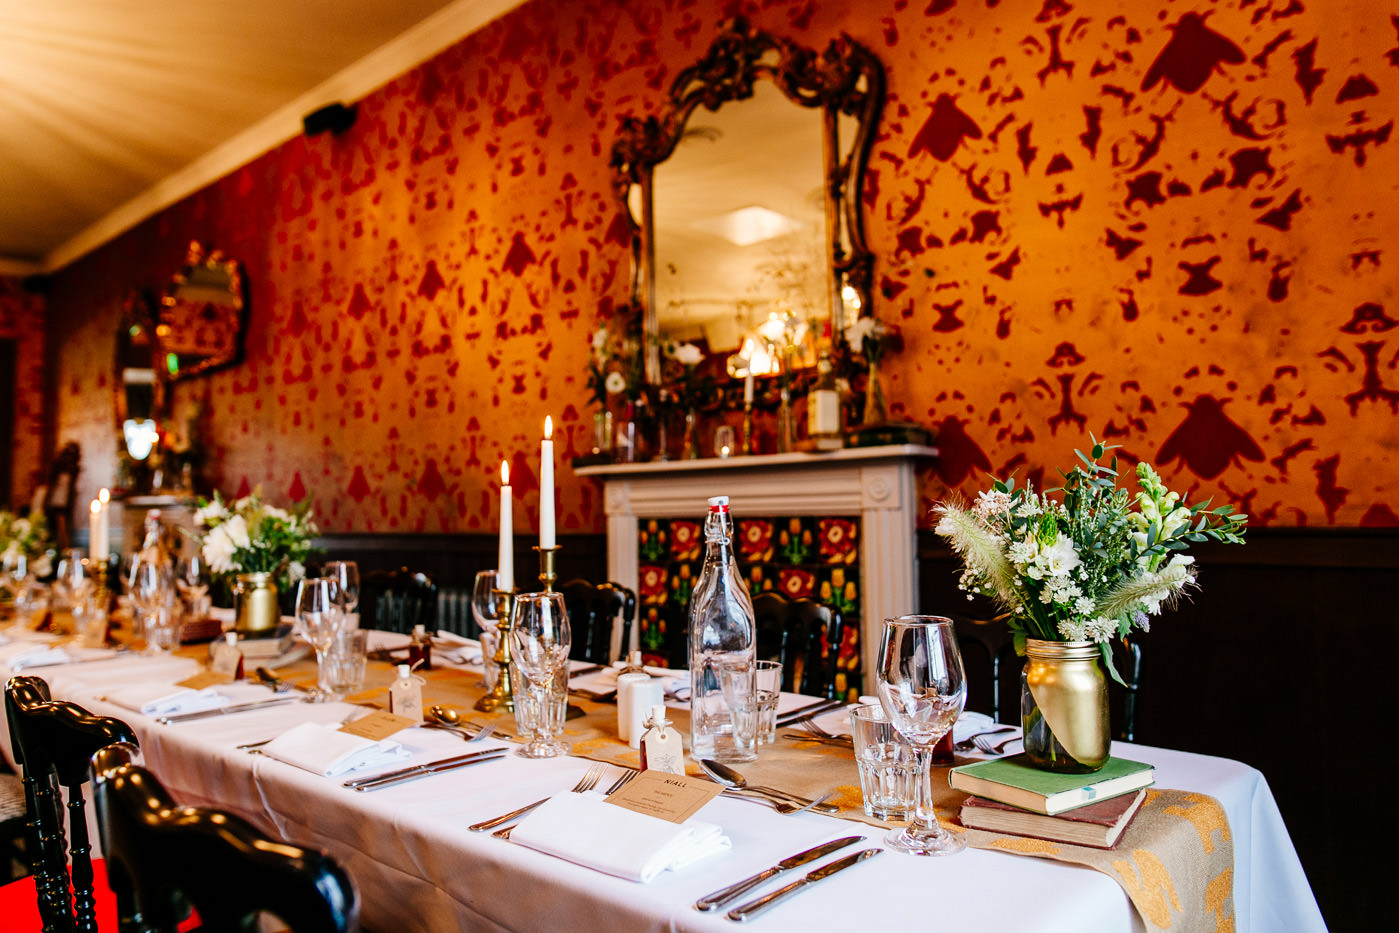 The-bell-in-Ticehurst-pub-kent-wedding-photographer-London-Epic-Love-Story-080